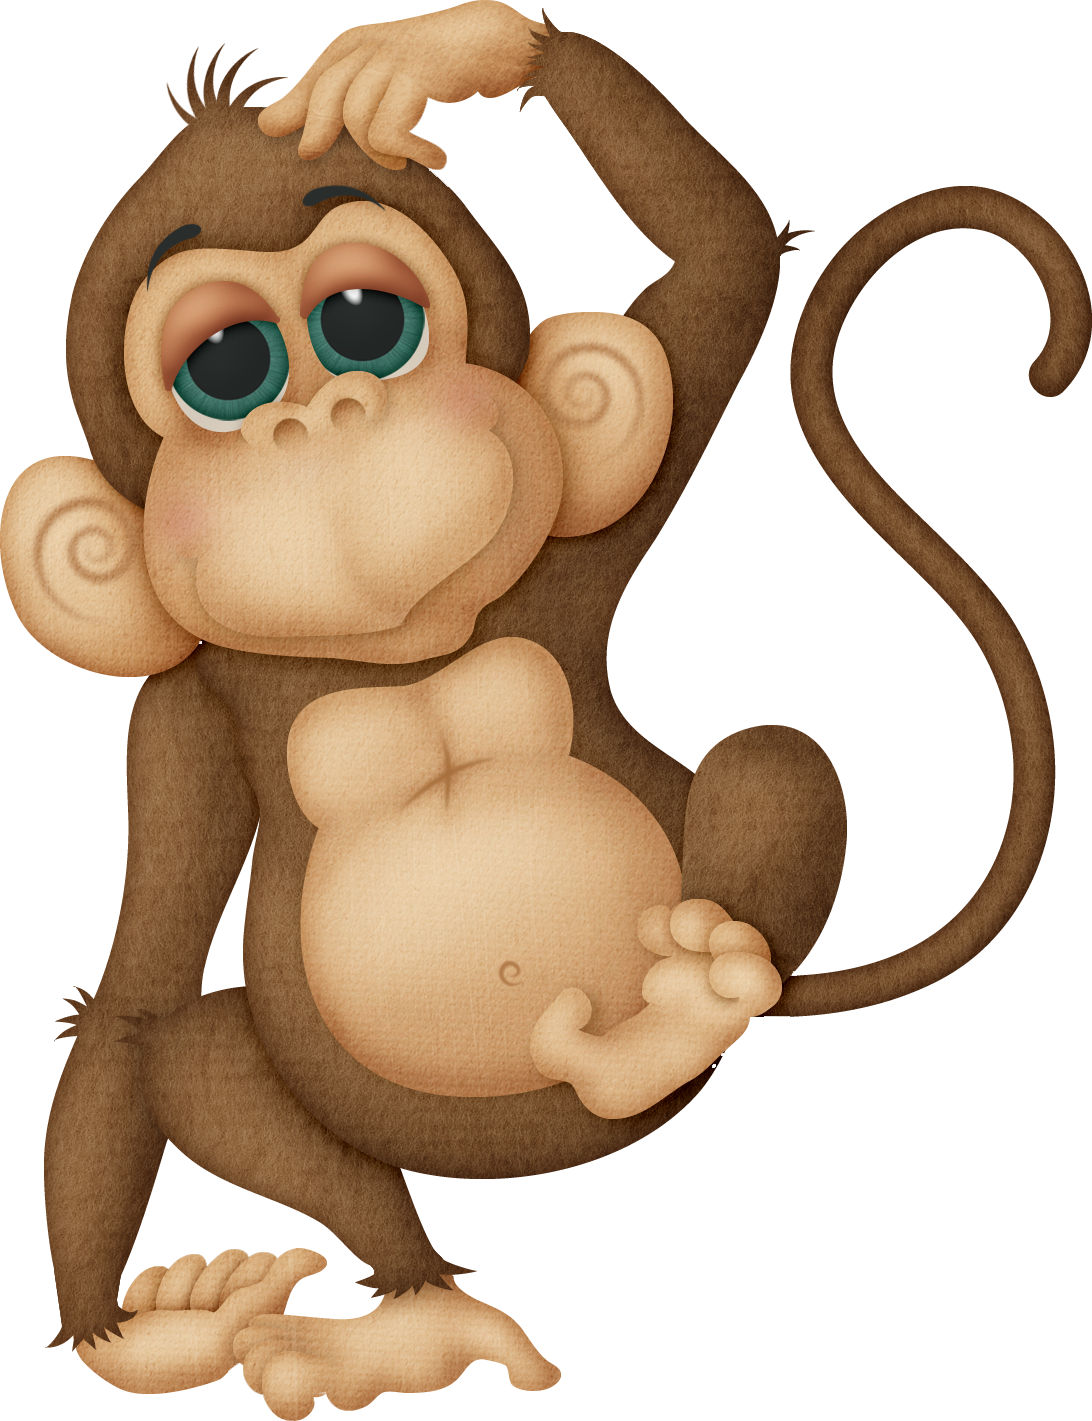 transparent Ape clipart mother monkey. Png images free download